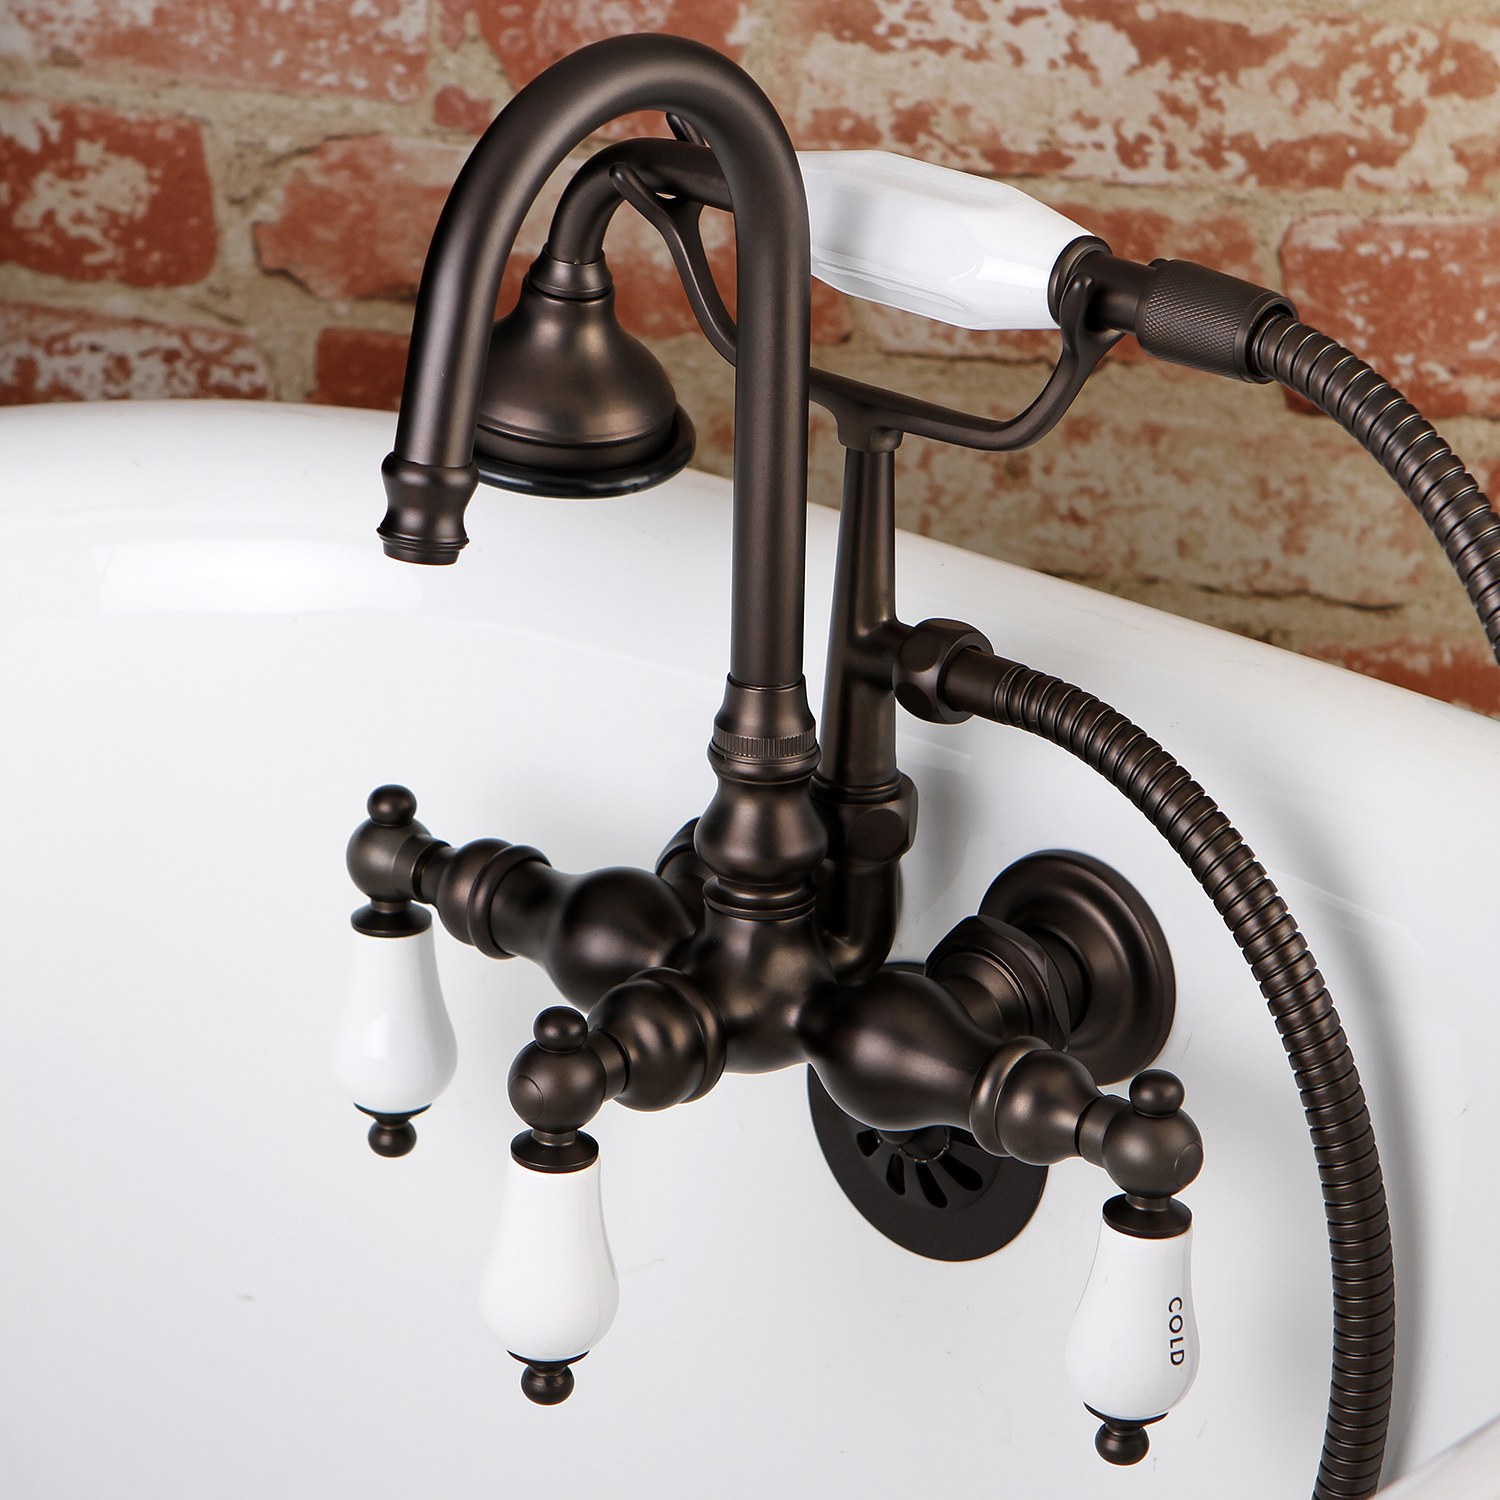 Aqua Vintage Ae9t5 Wall Mount Clawfoot Tub Faucet Oil